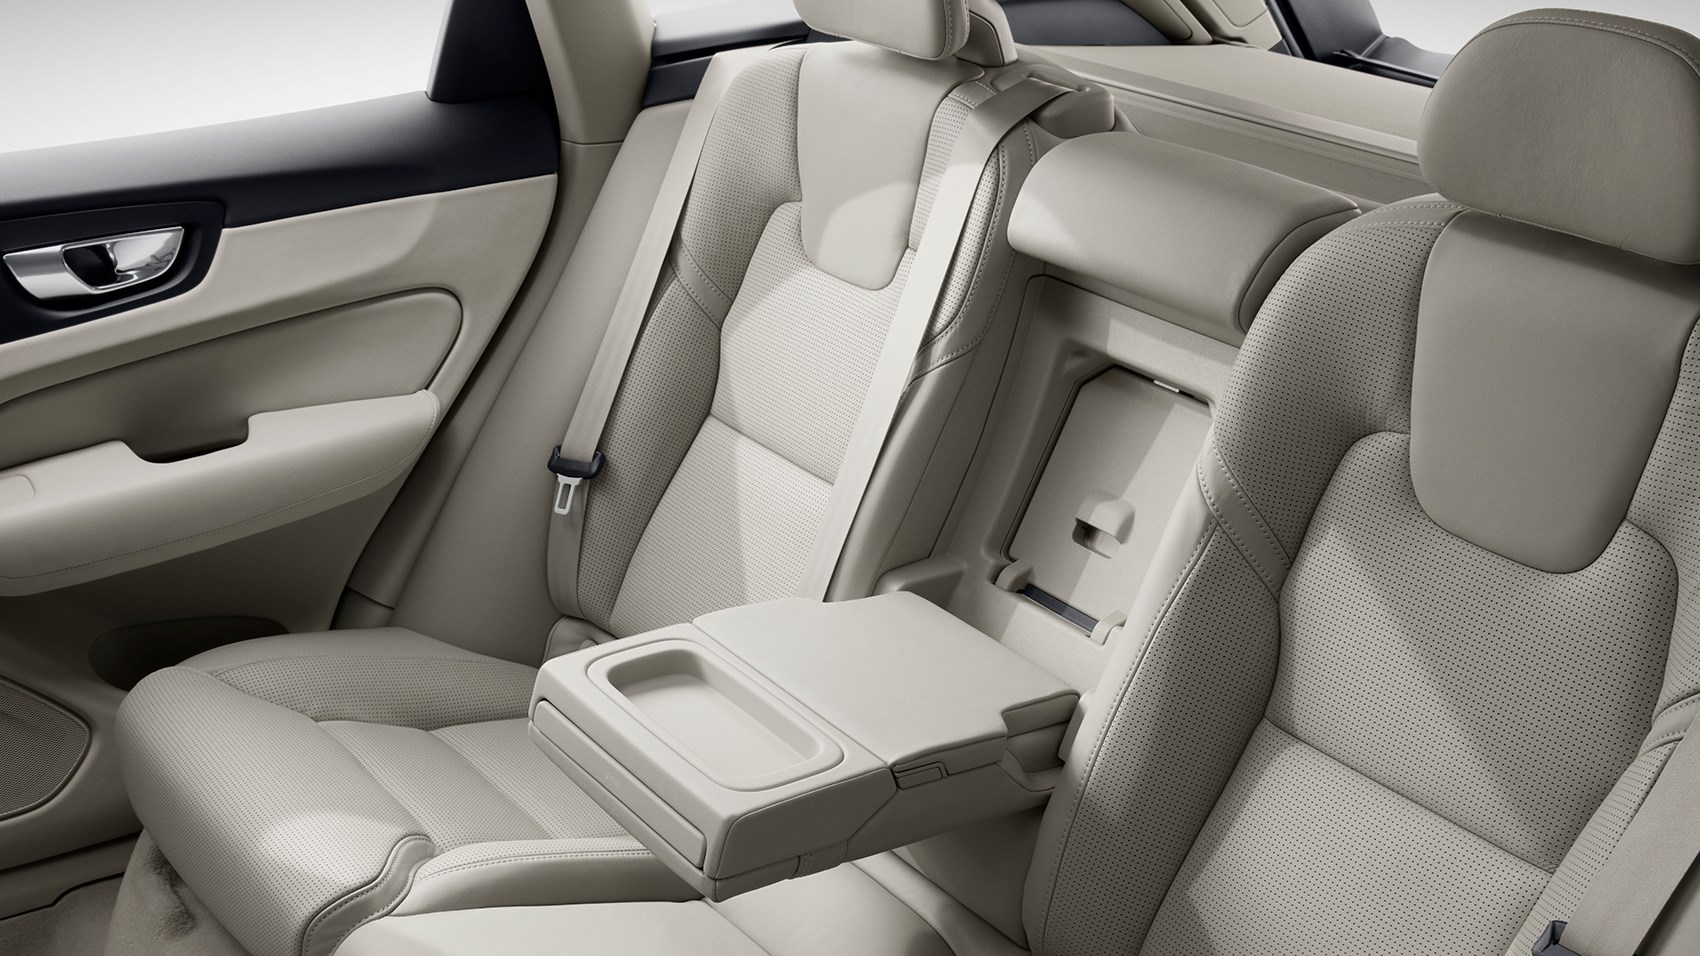 Volvo XC60 rear seats